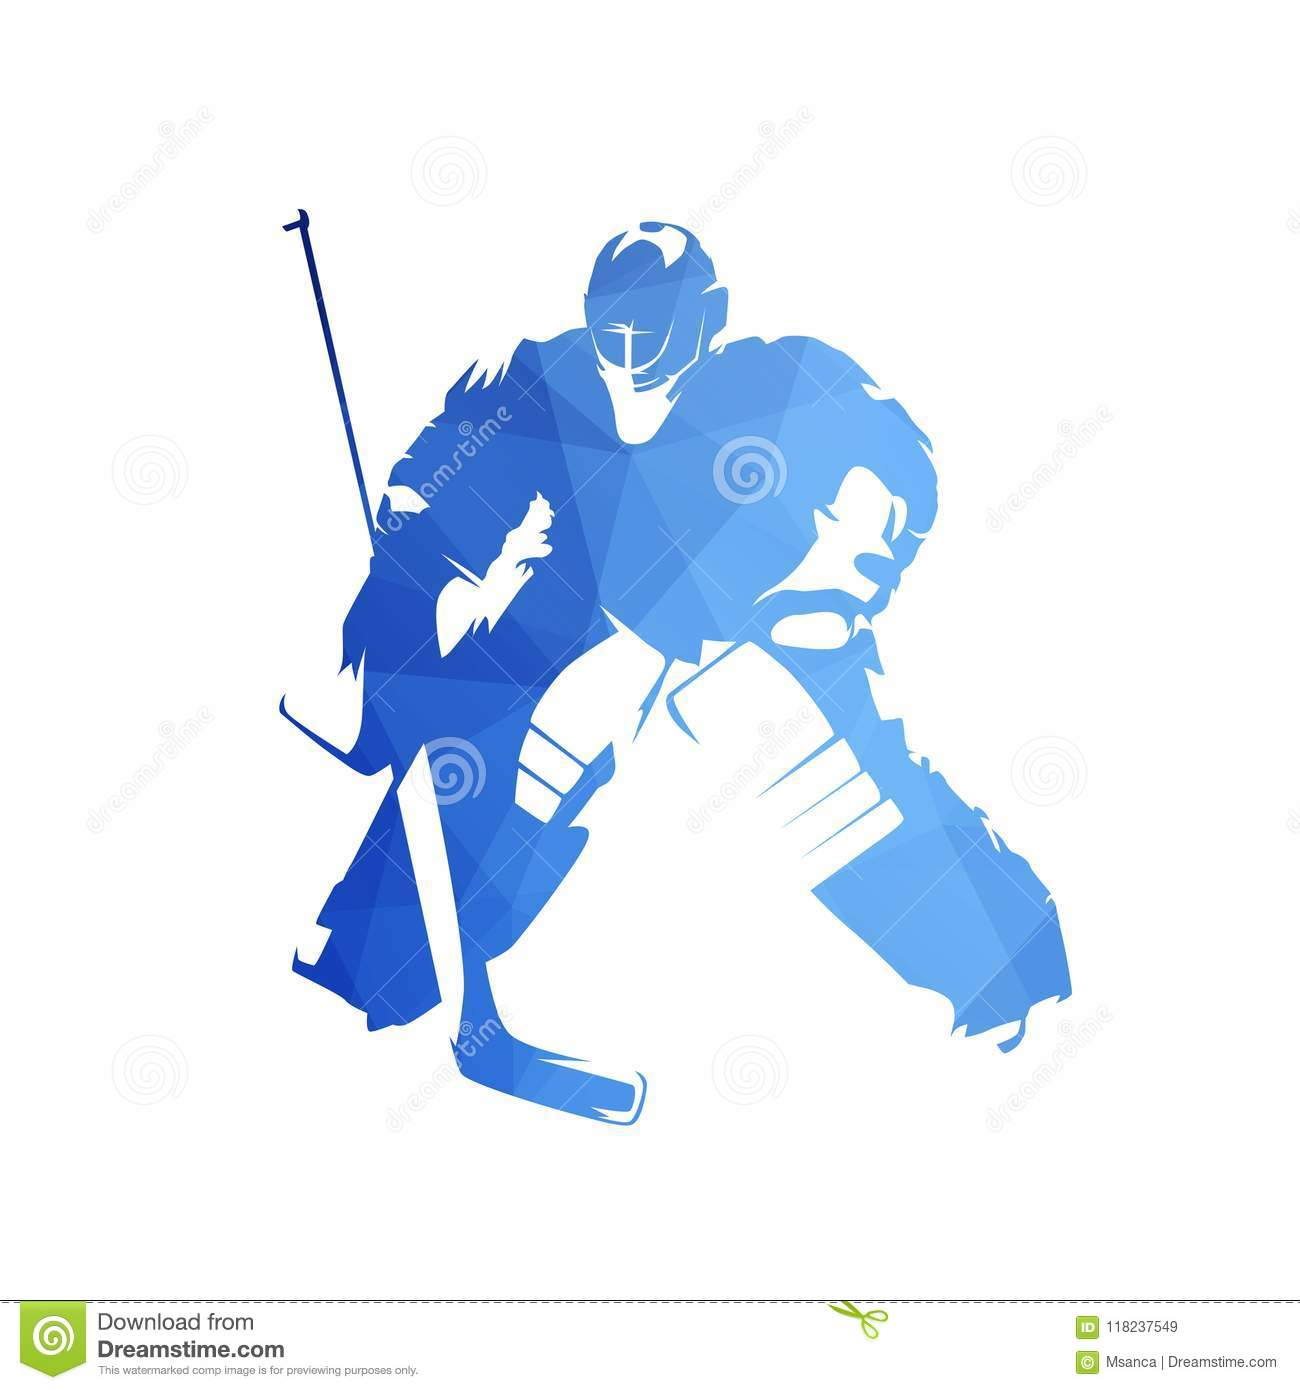 Ice Hockey Goalie Abstract Blue Geometric Vector Silhouette Stock